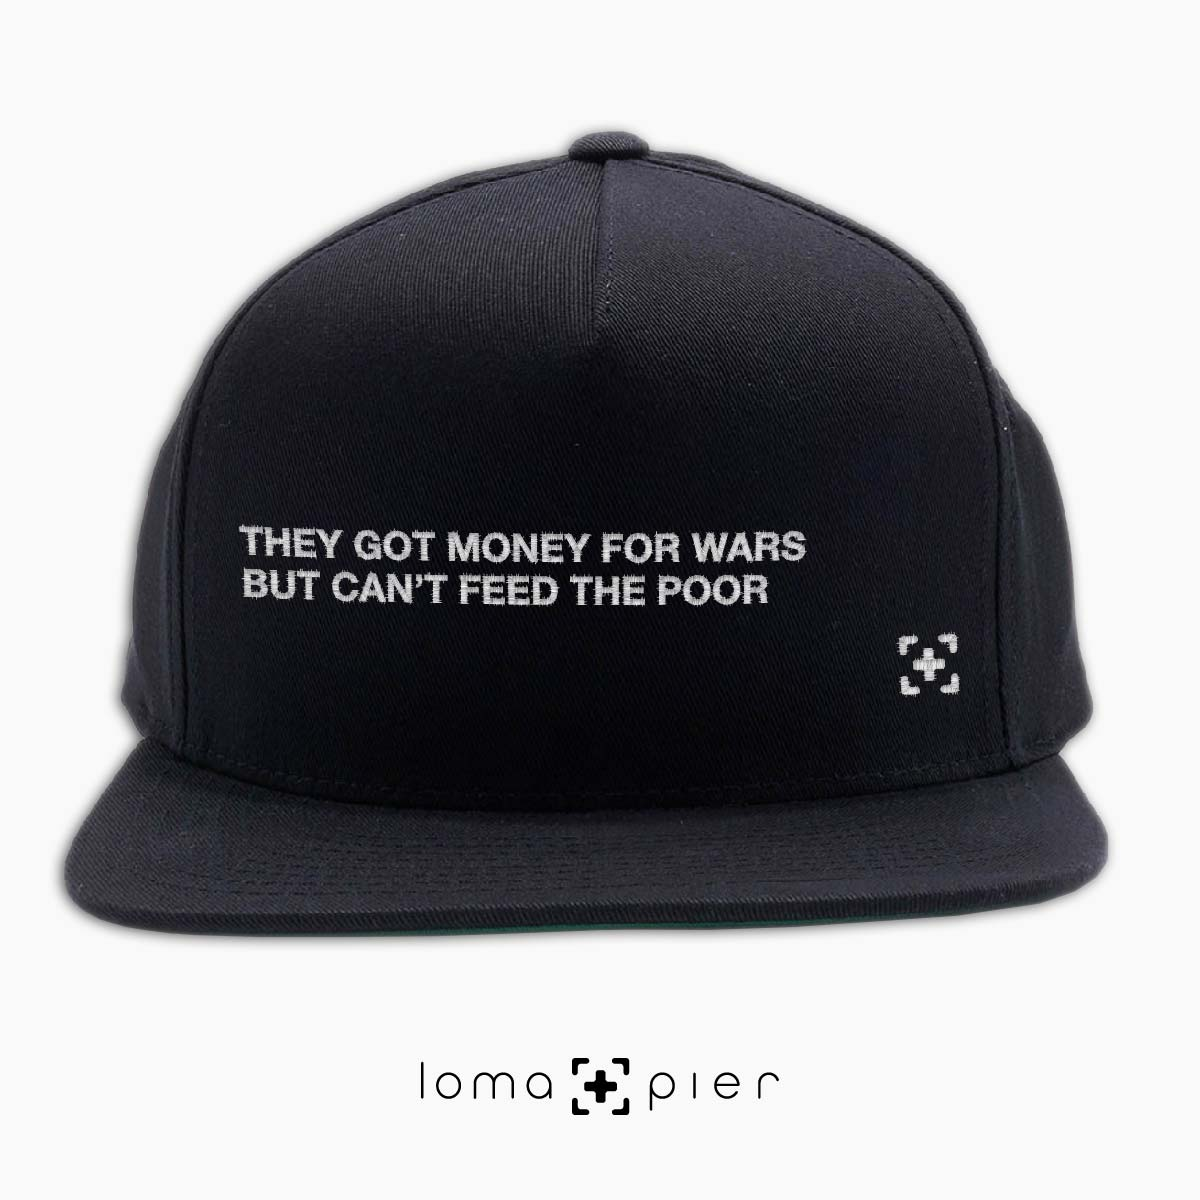 hip hop hat with rap lyrics at the loma and pier hat shop